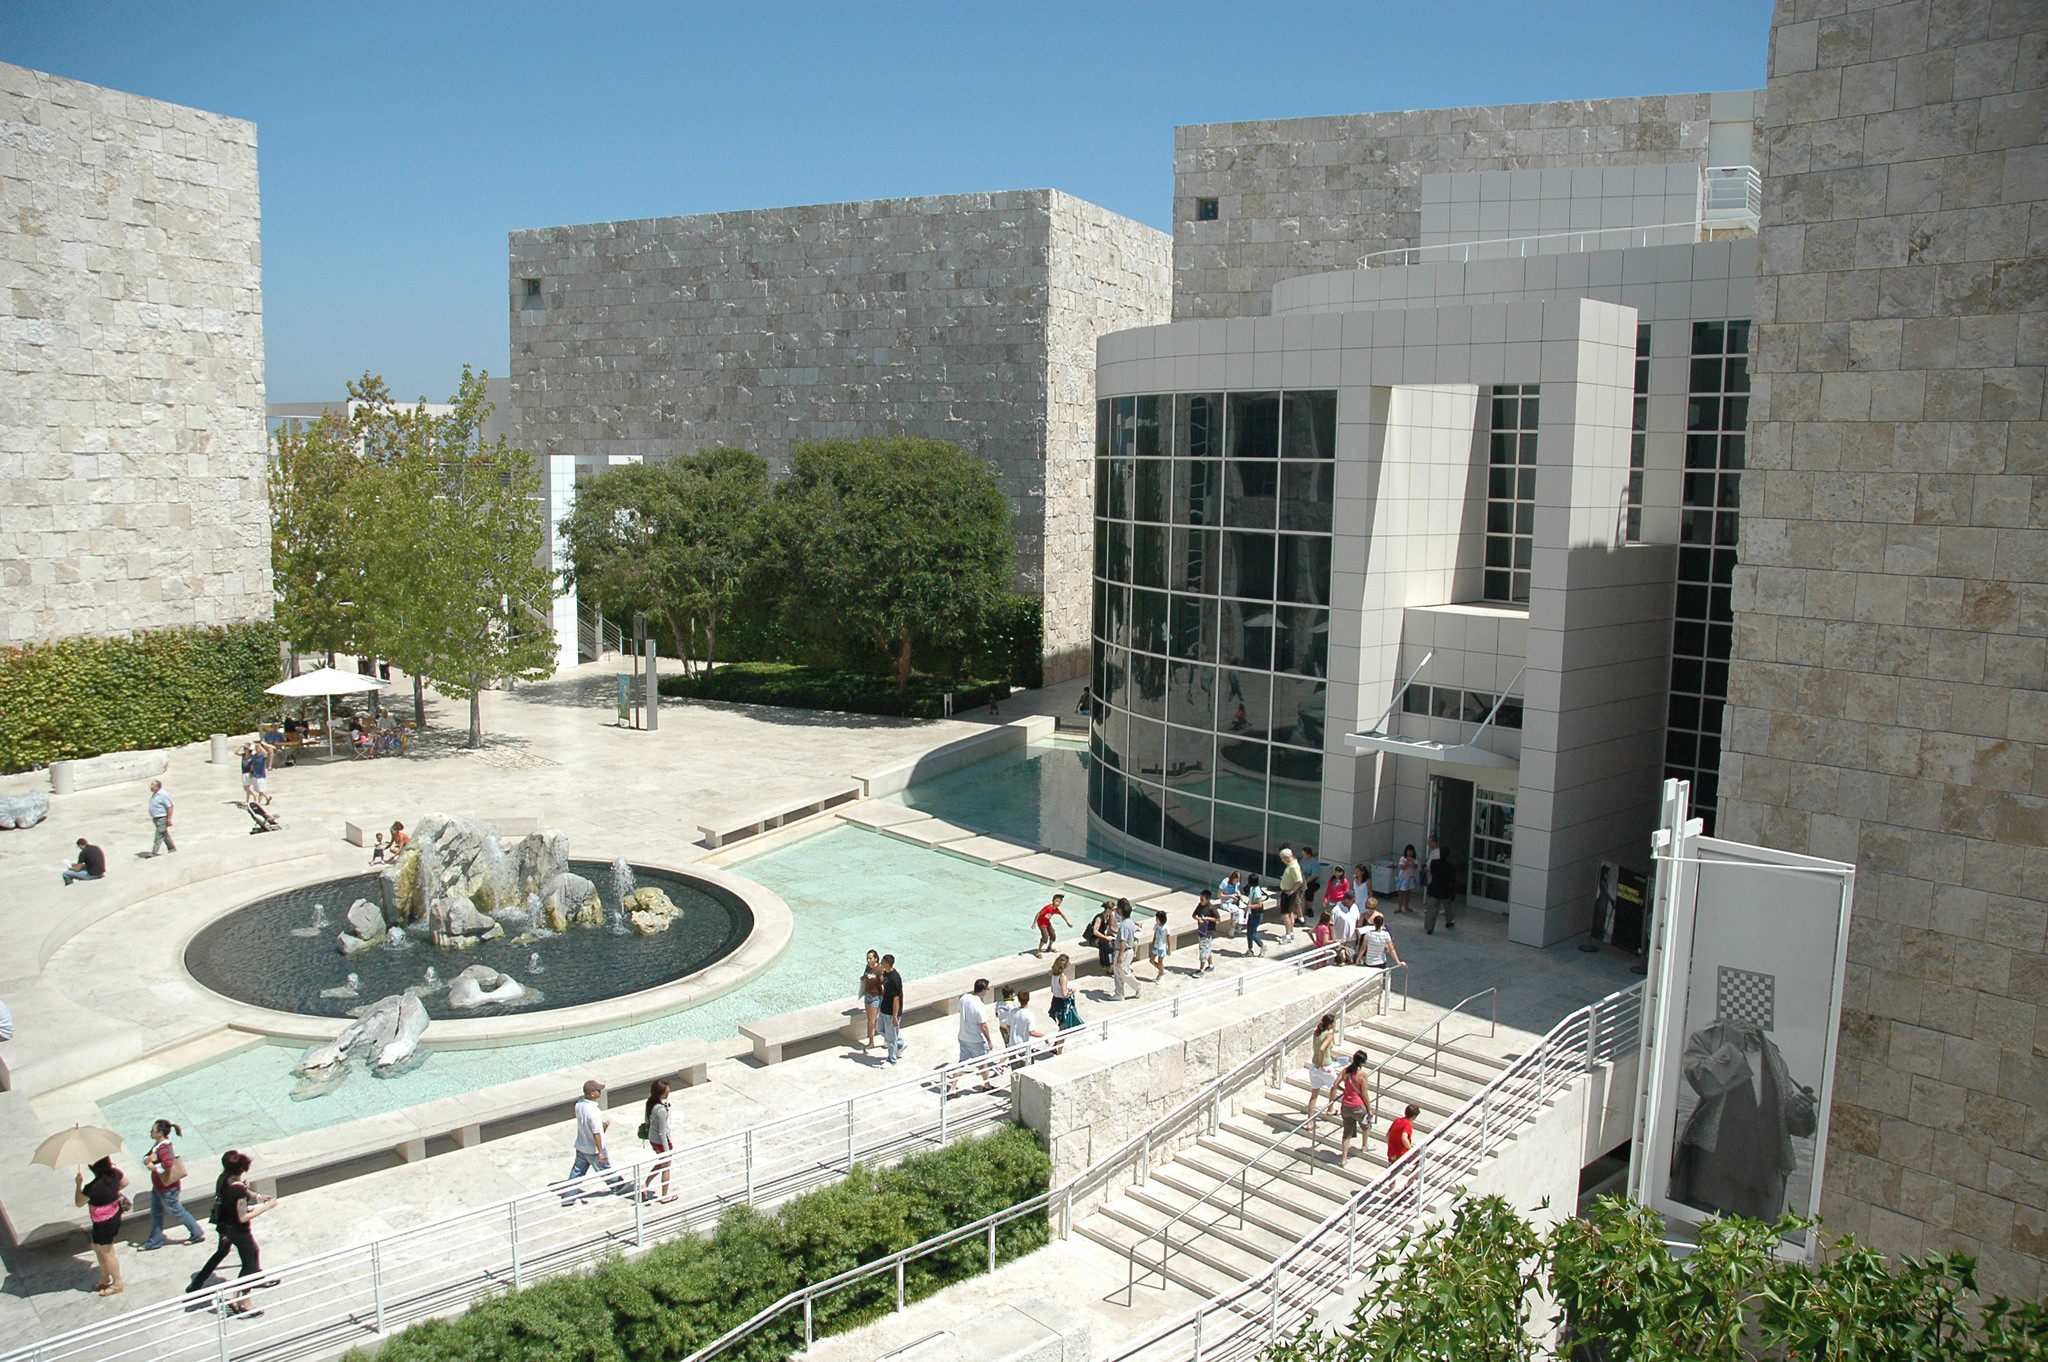 Courtyard Floor Plans Getty Museum Hires Jeffrey Spier Davide Gasparotto As